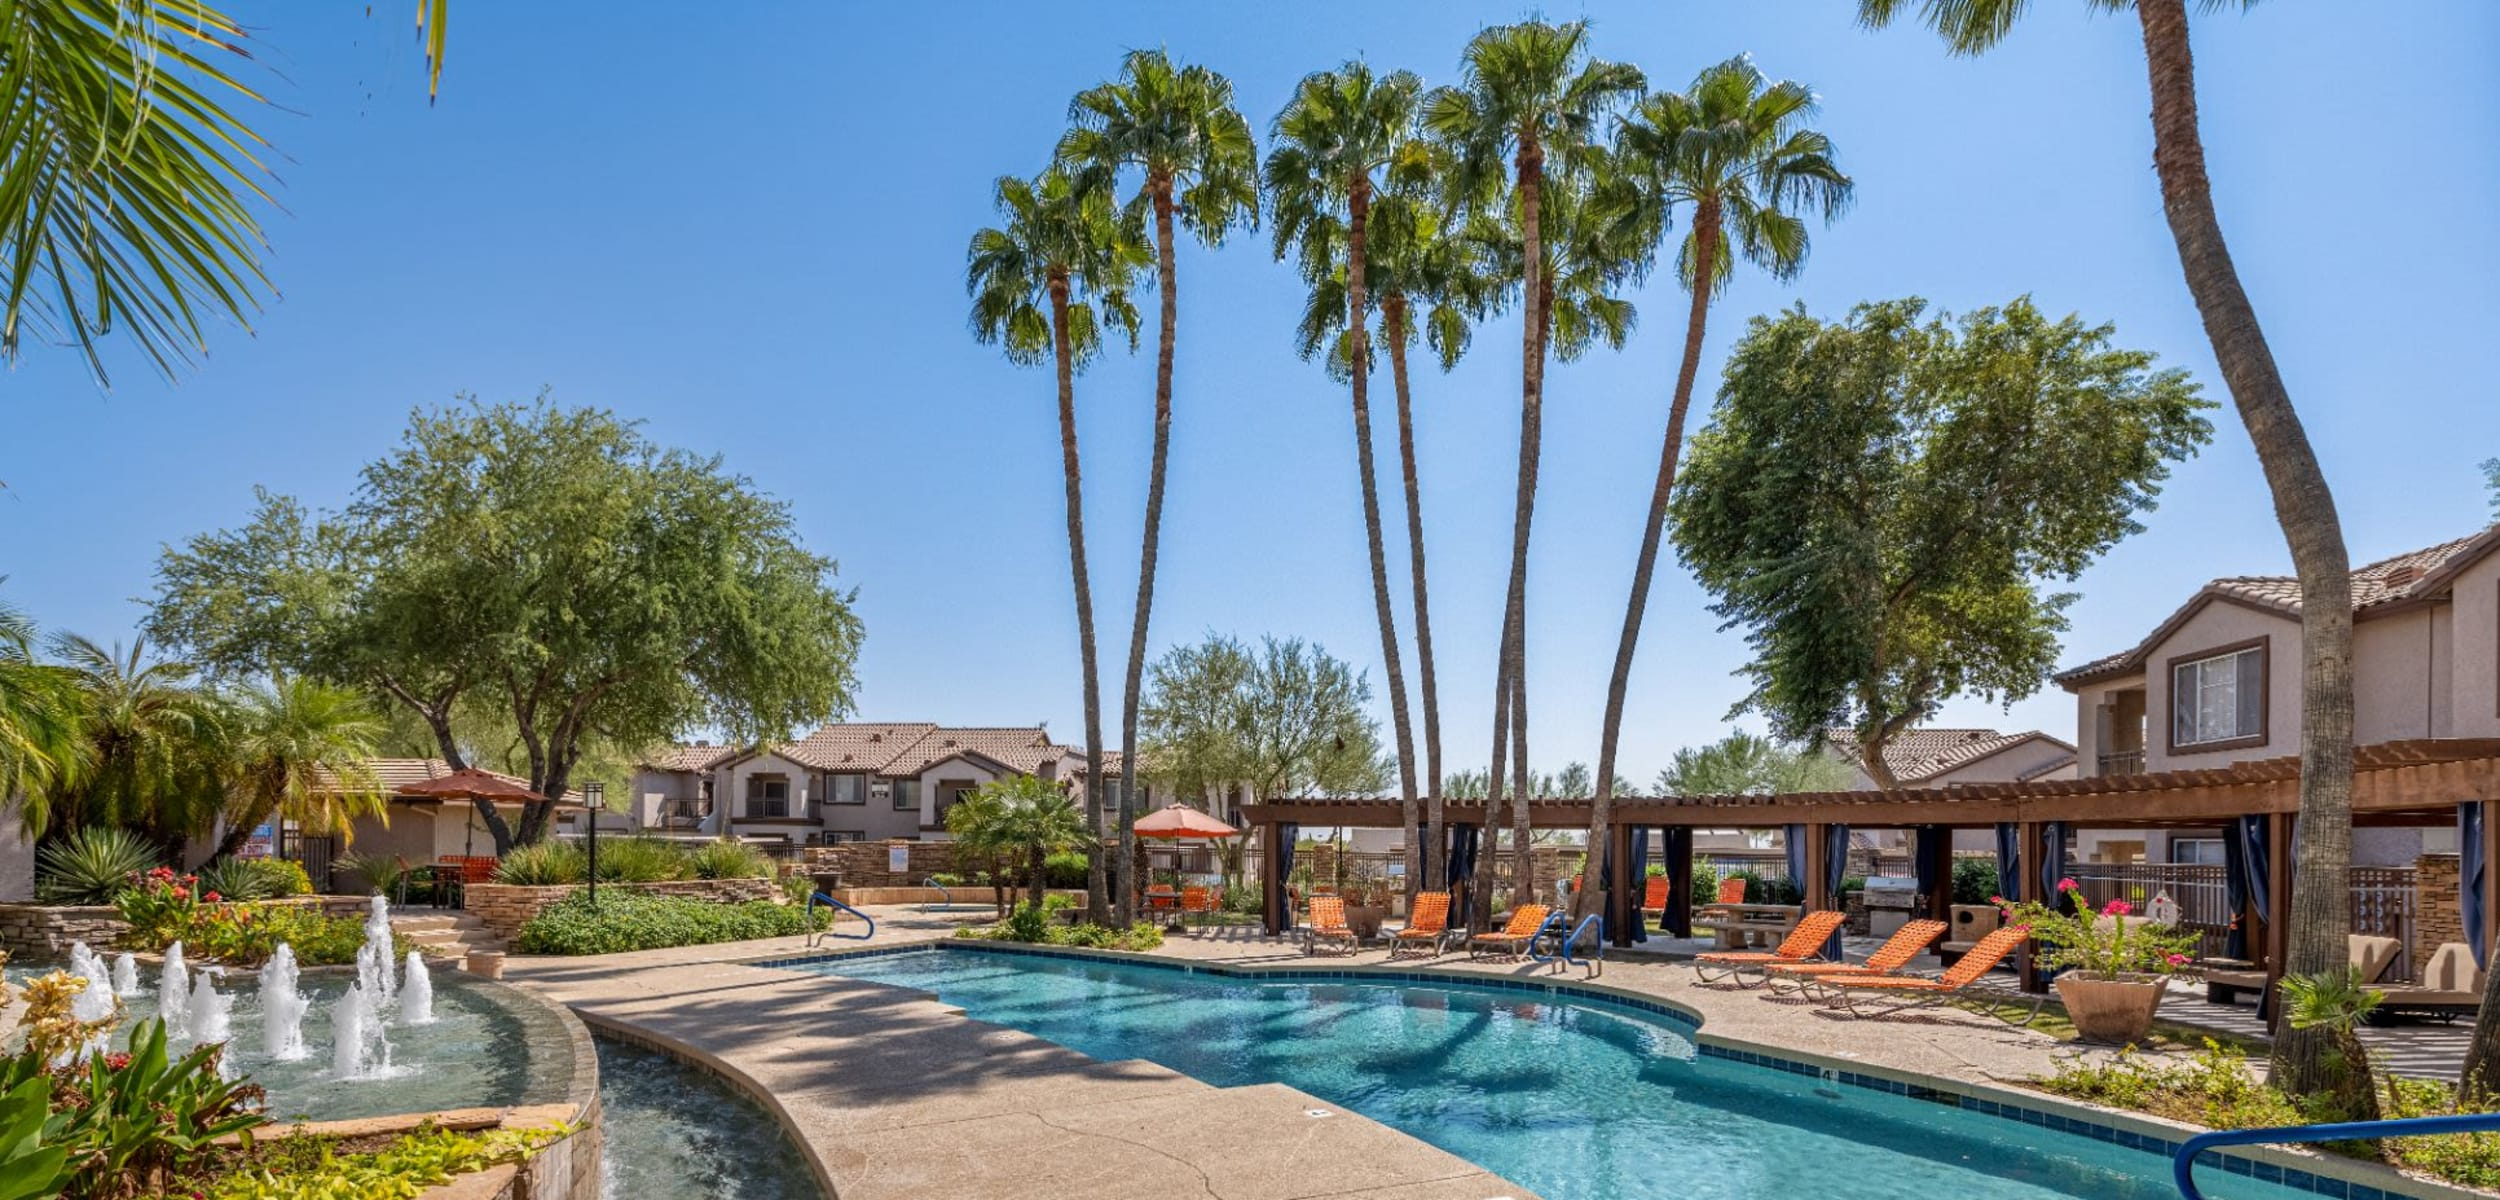 Sparkling pool surrounded by trees at Azure Creek in Cave Creek, Arizona